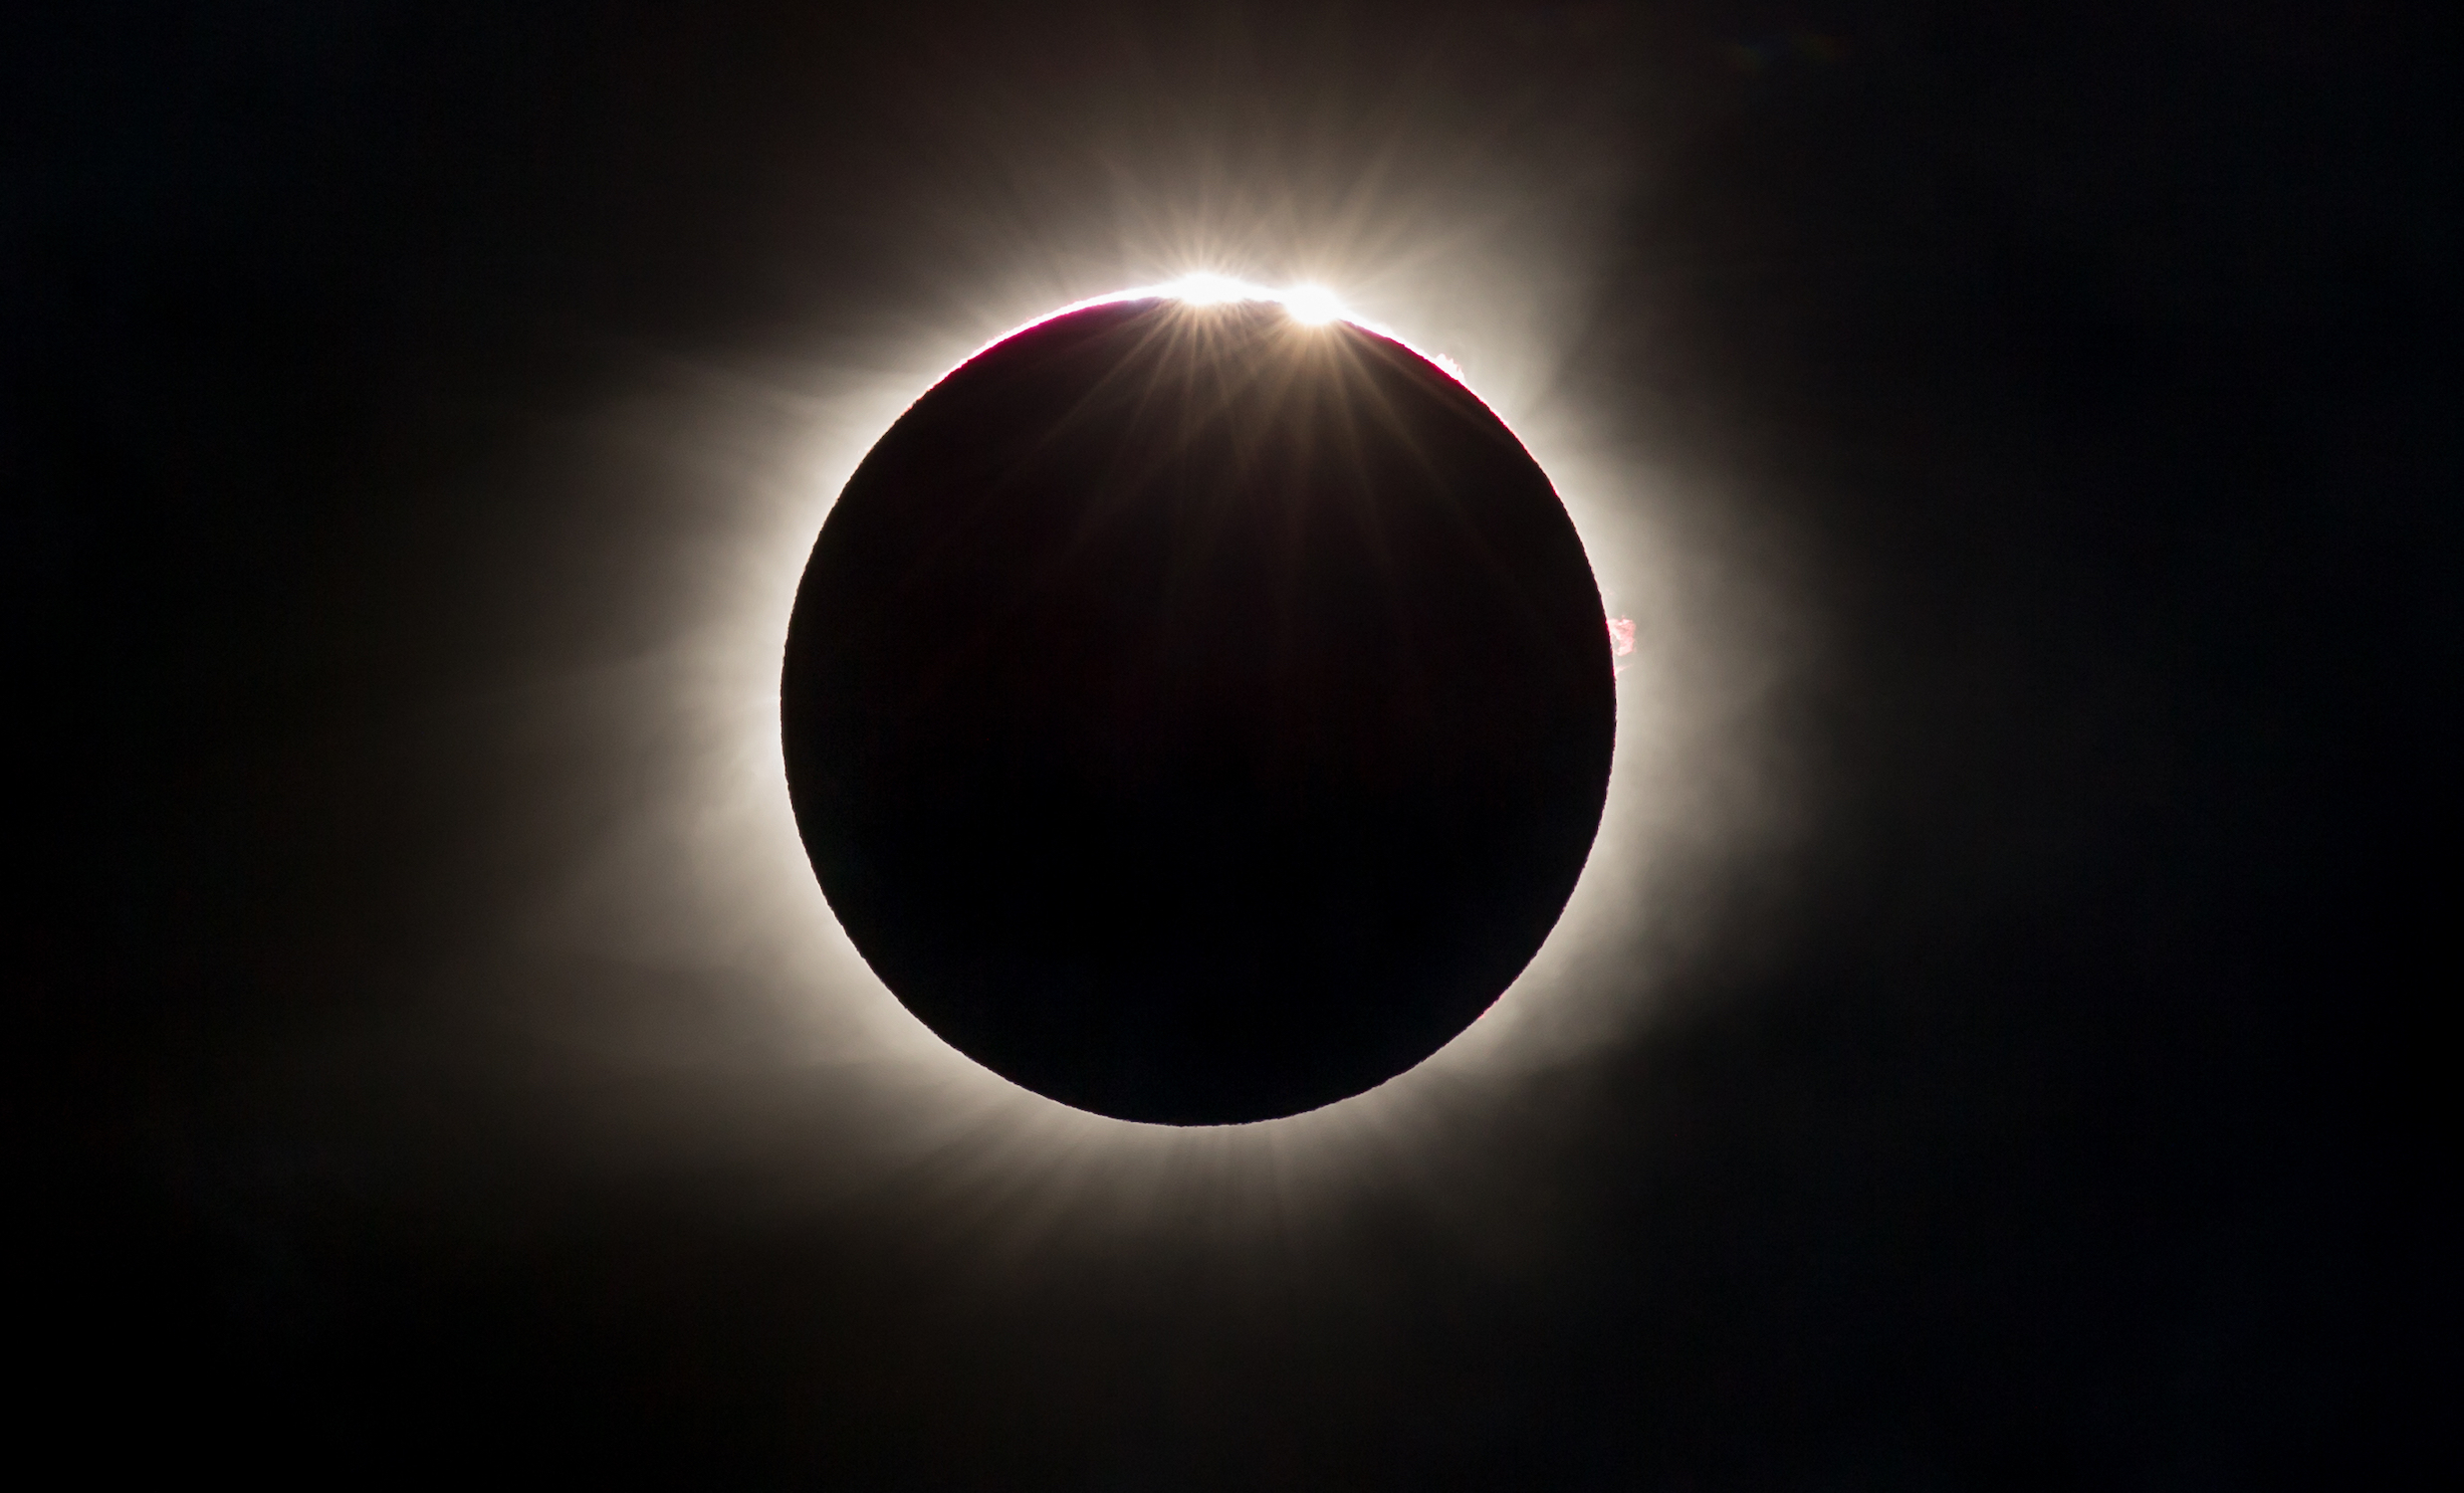 The 2017 solar eclipse was so popular that a new survey found that 216 million American adults viewed the event.